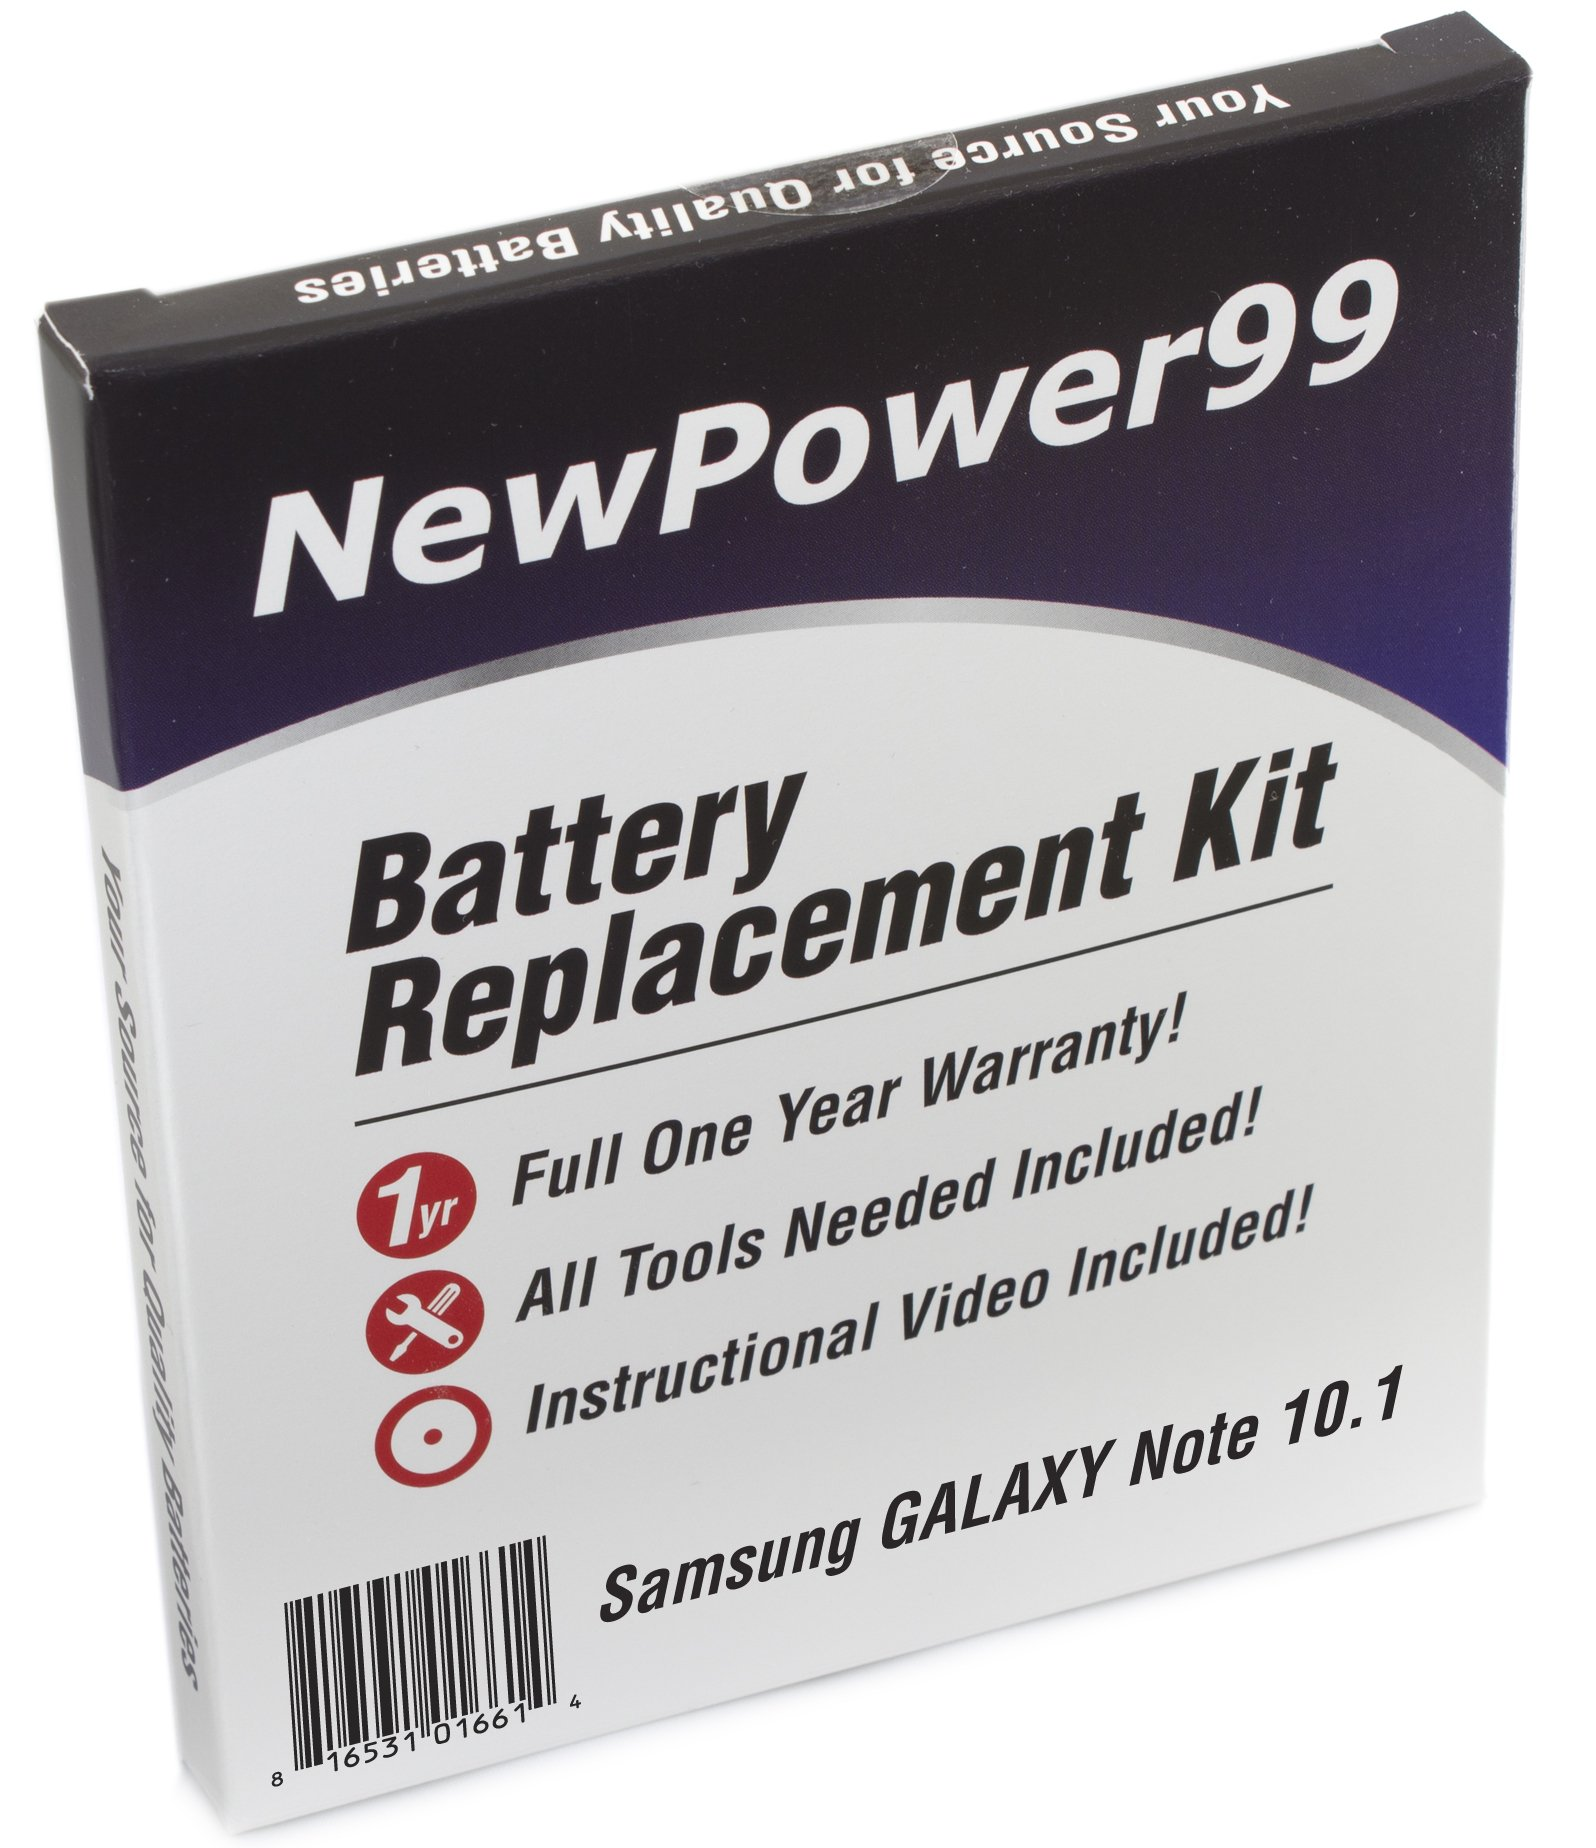 NewPower99 Battery Replacement Kit with Battery, Video Instructions and Tools for Samsung Galaxy Note 10.1 Models GT-N8000, GT-N8011, GT-N8013, GT-N8020 by NewPower99